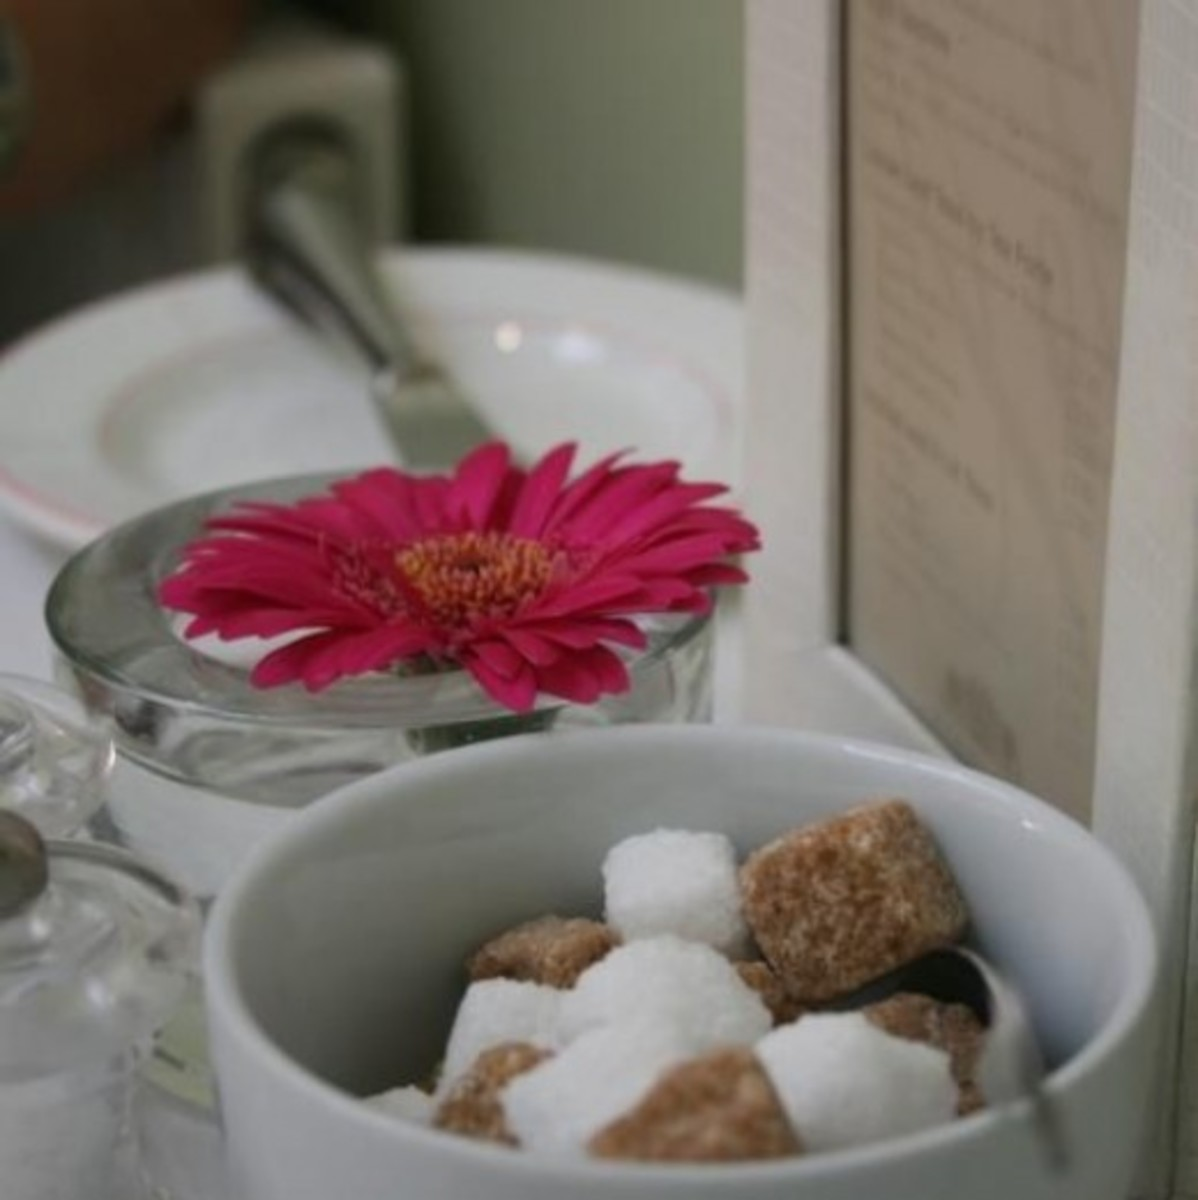 Table inside the tearoom with flower and sugar cubes